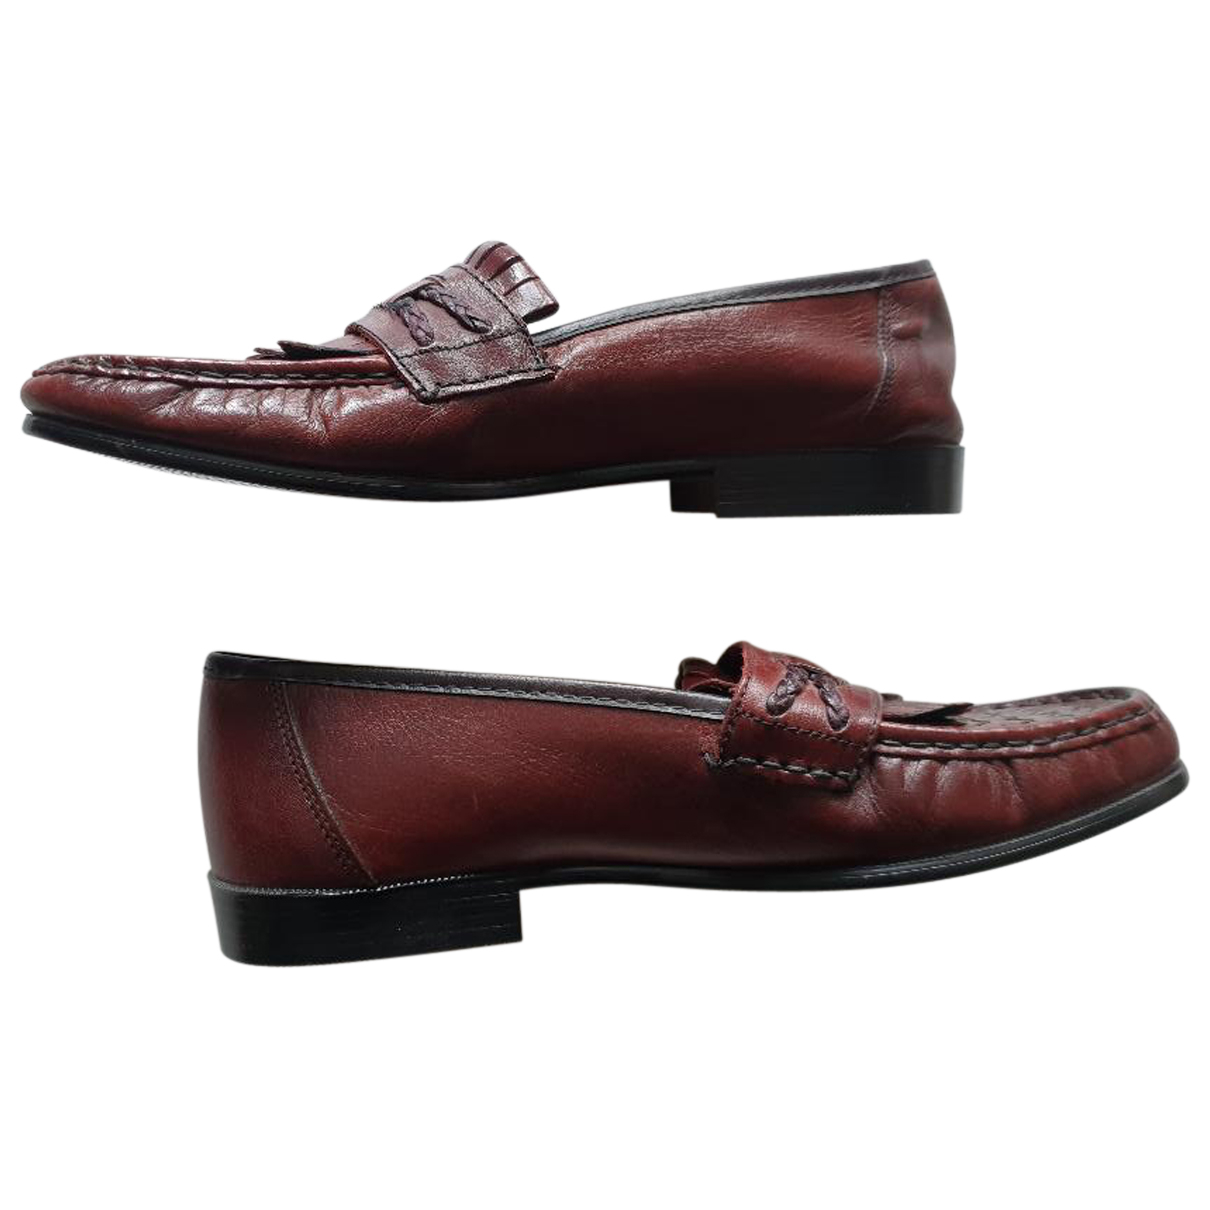 Sandro N Brown Leather Flats for Men 40 EU